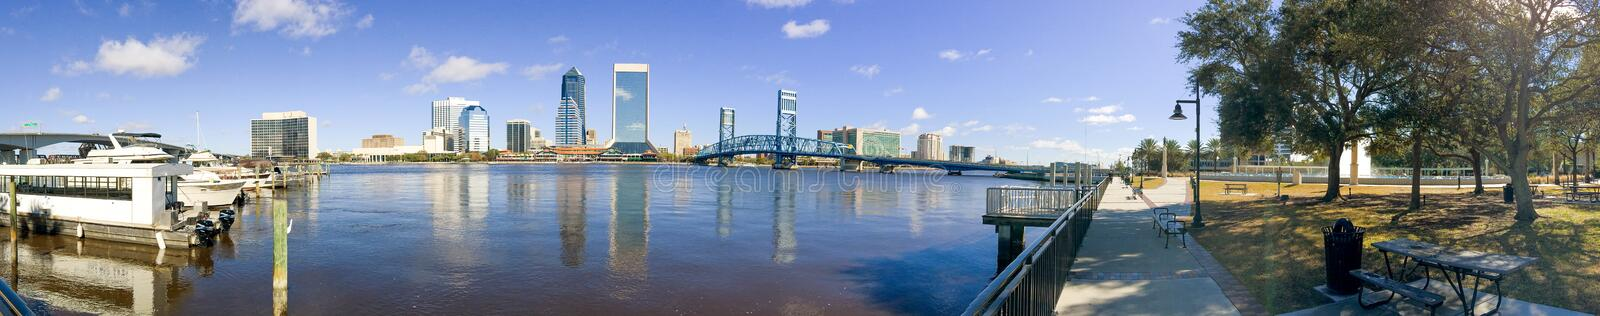 Panoramic view of city skyline with tourists, Jacksonville royalty free stock photos